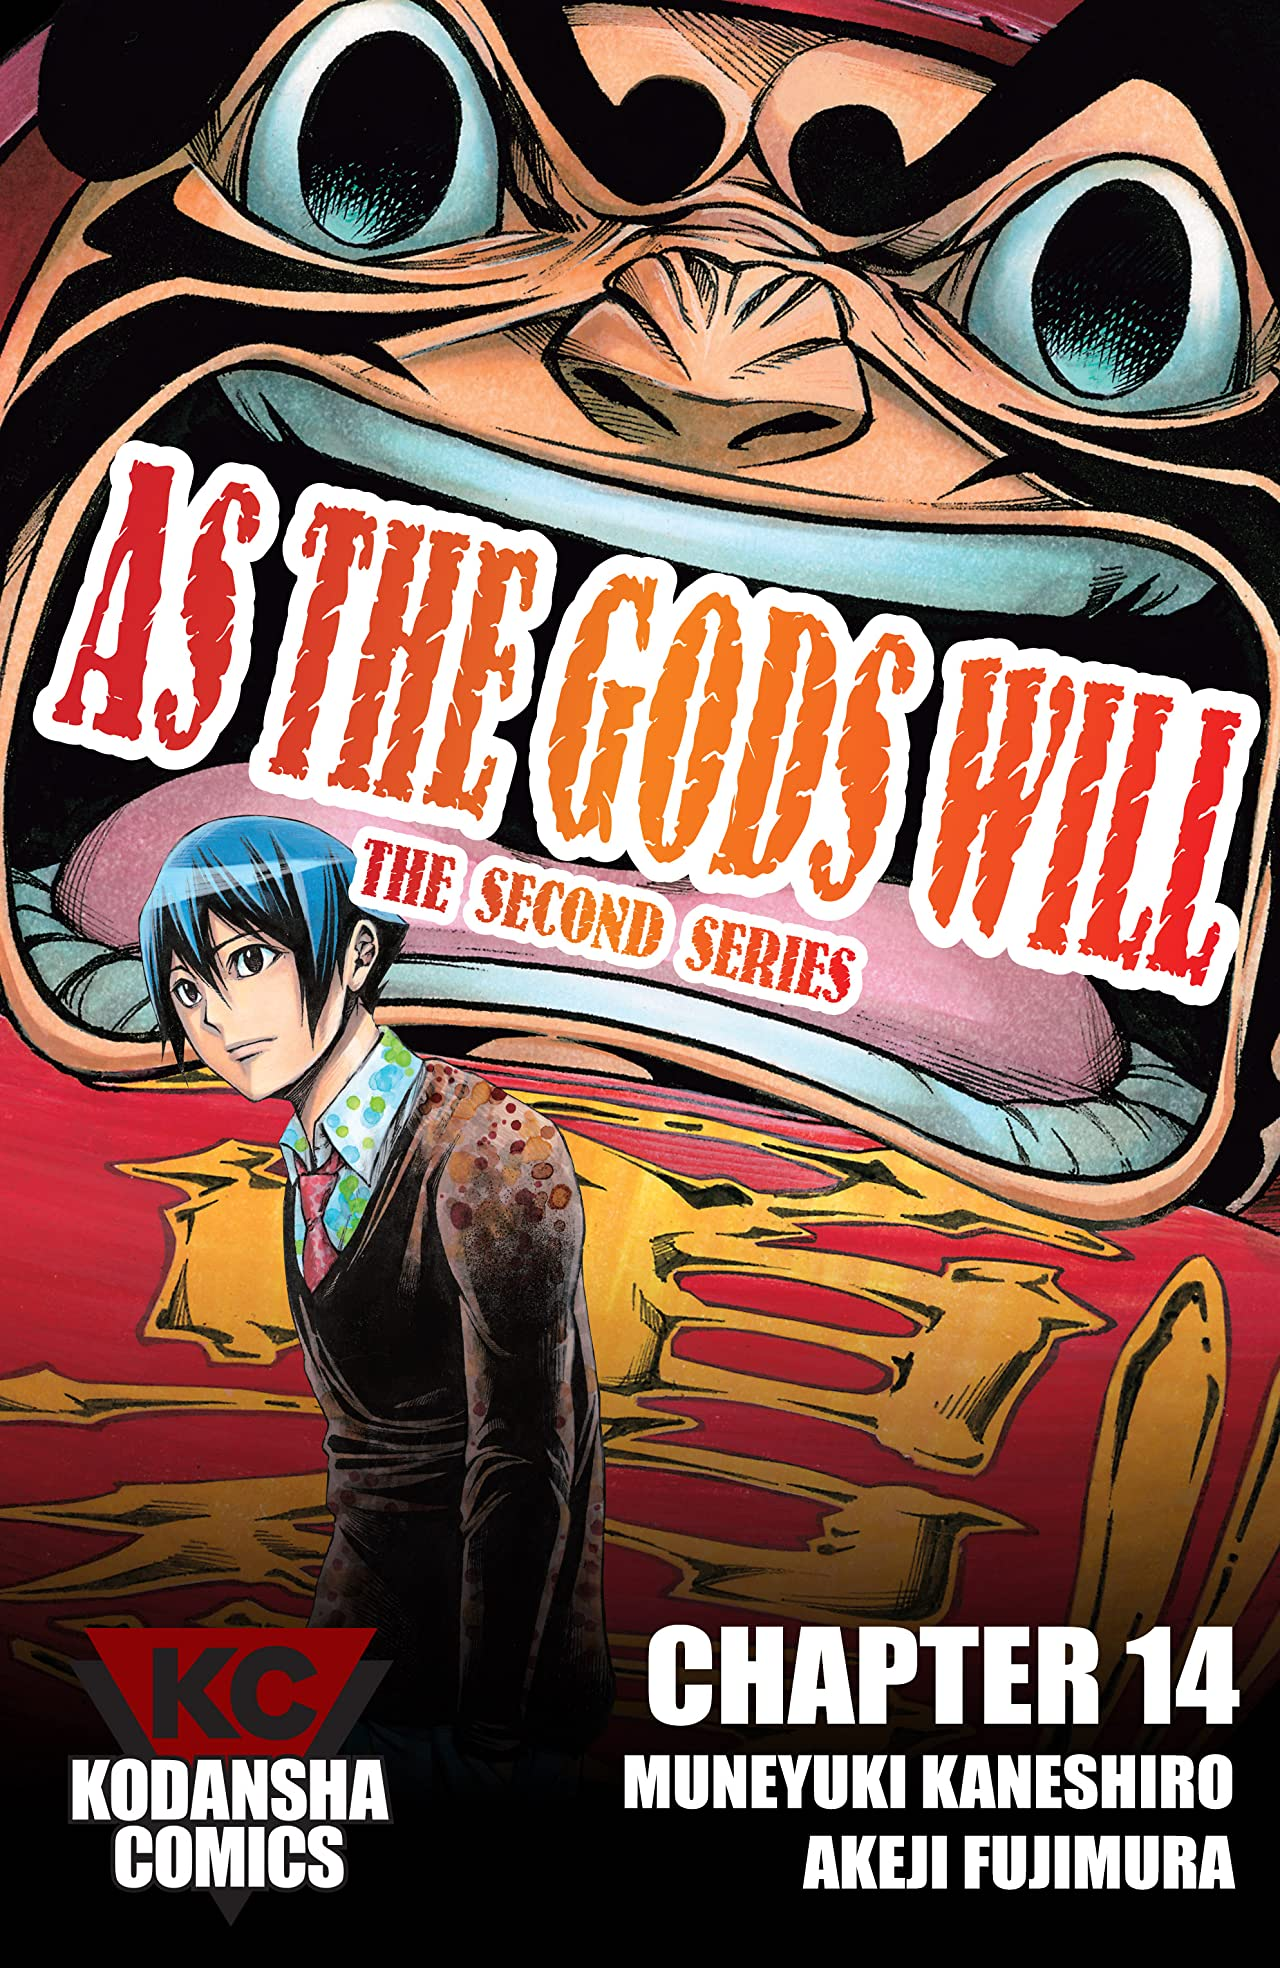 As The Gods Will: The Second Series #14